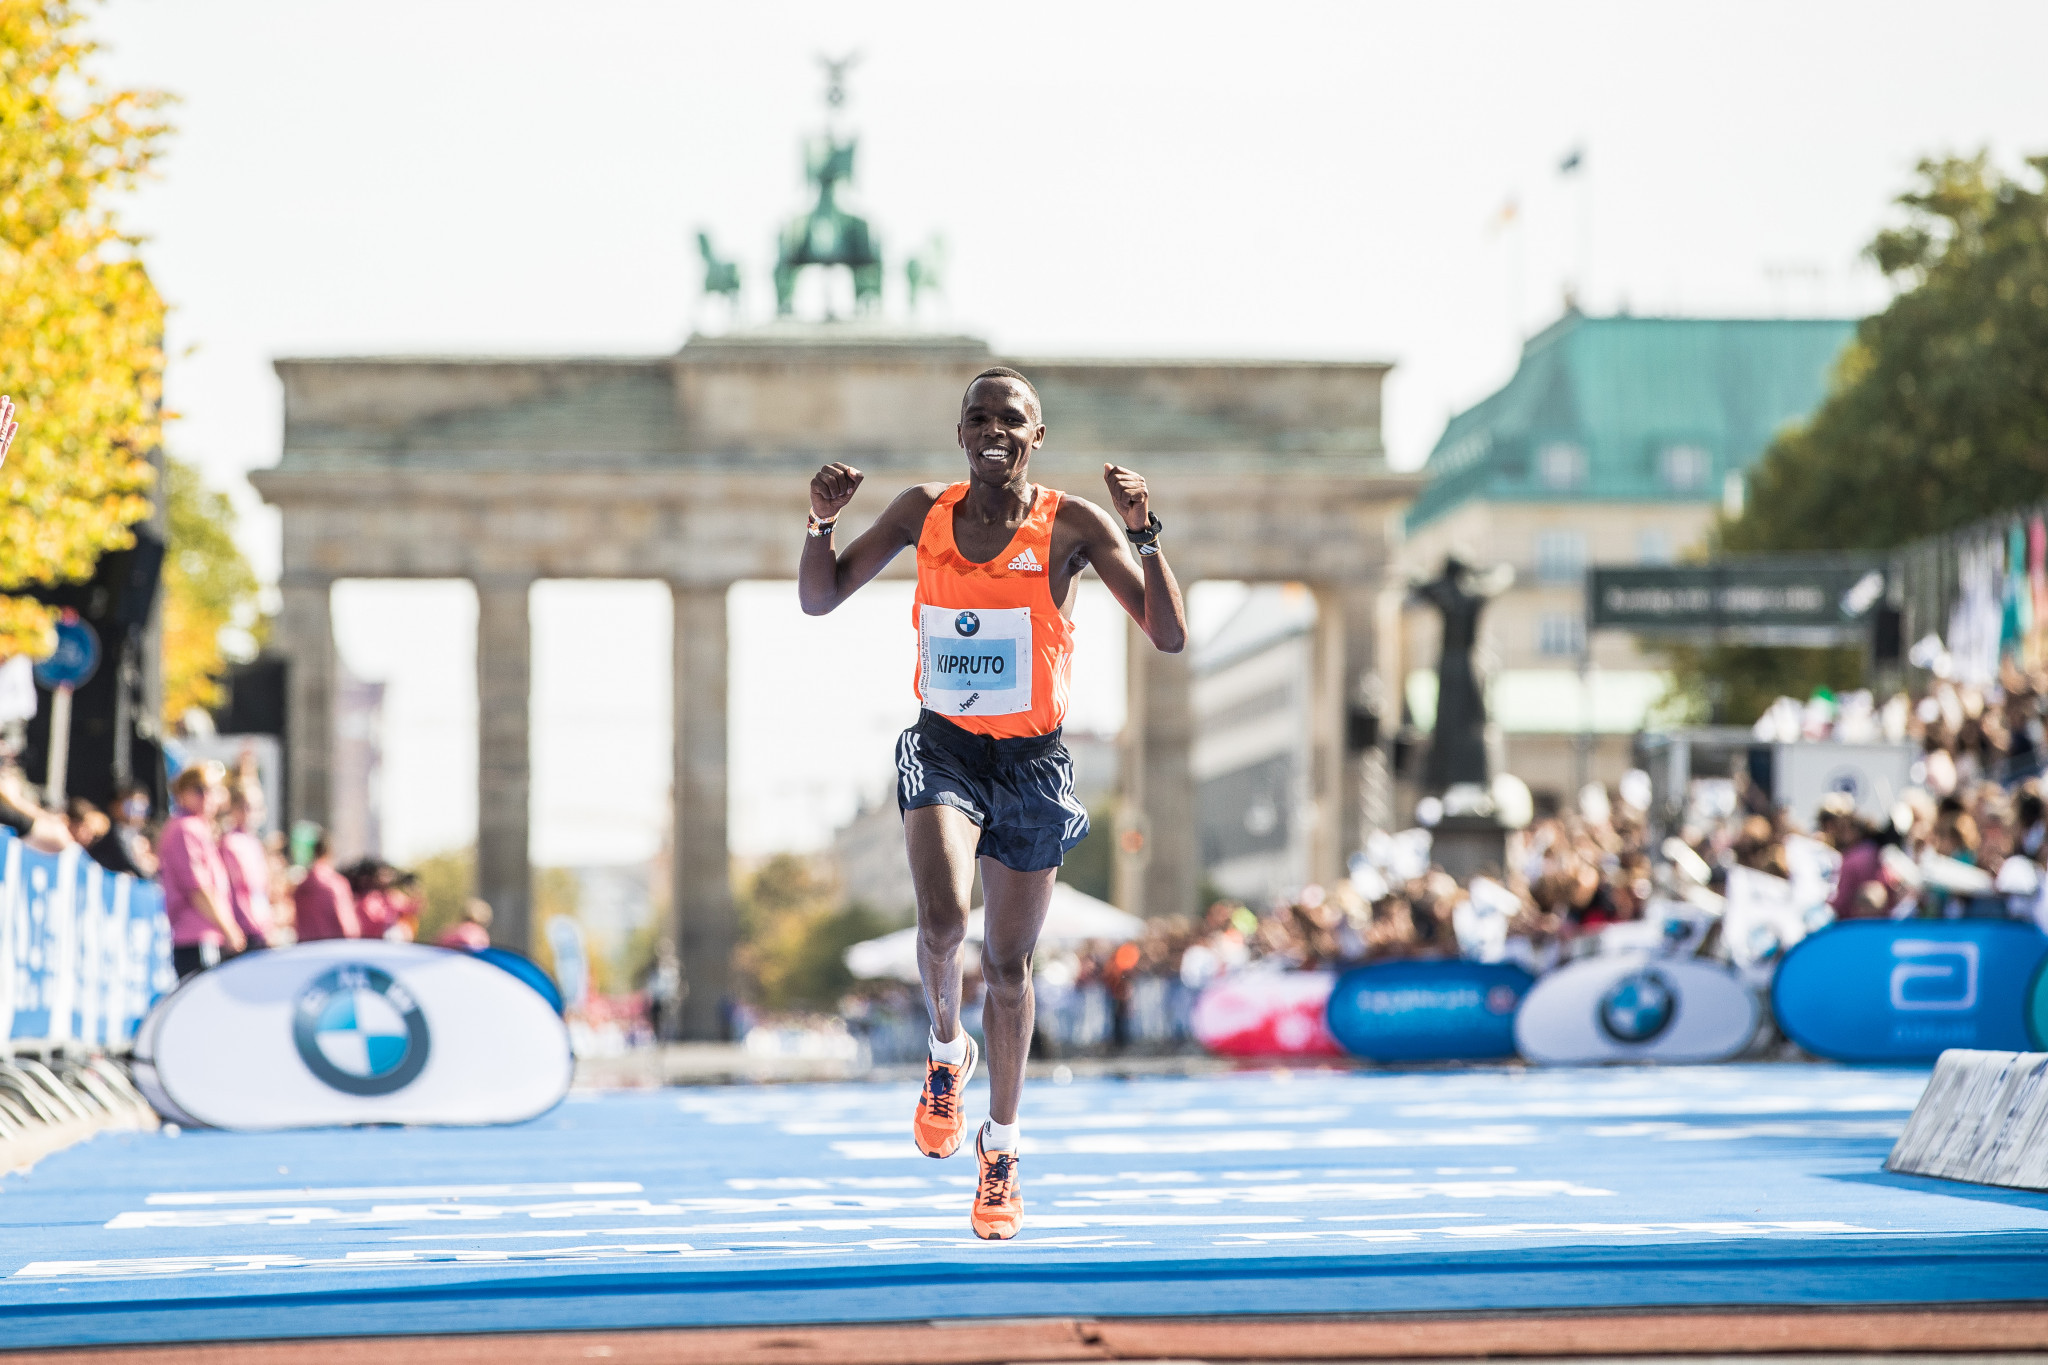 Berlin Marathon will not go ahead on scheduled date due to pandemic